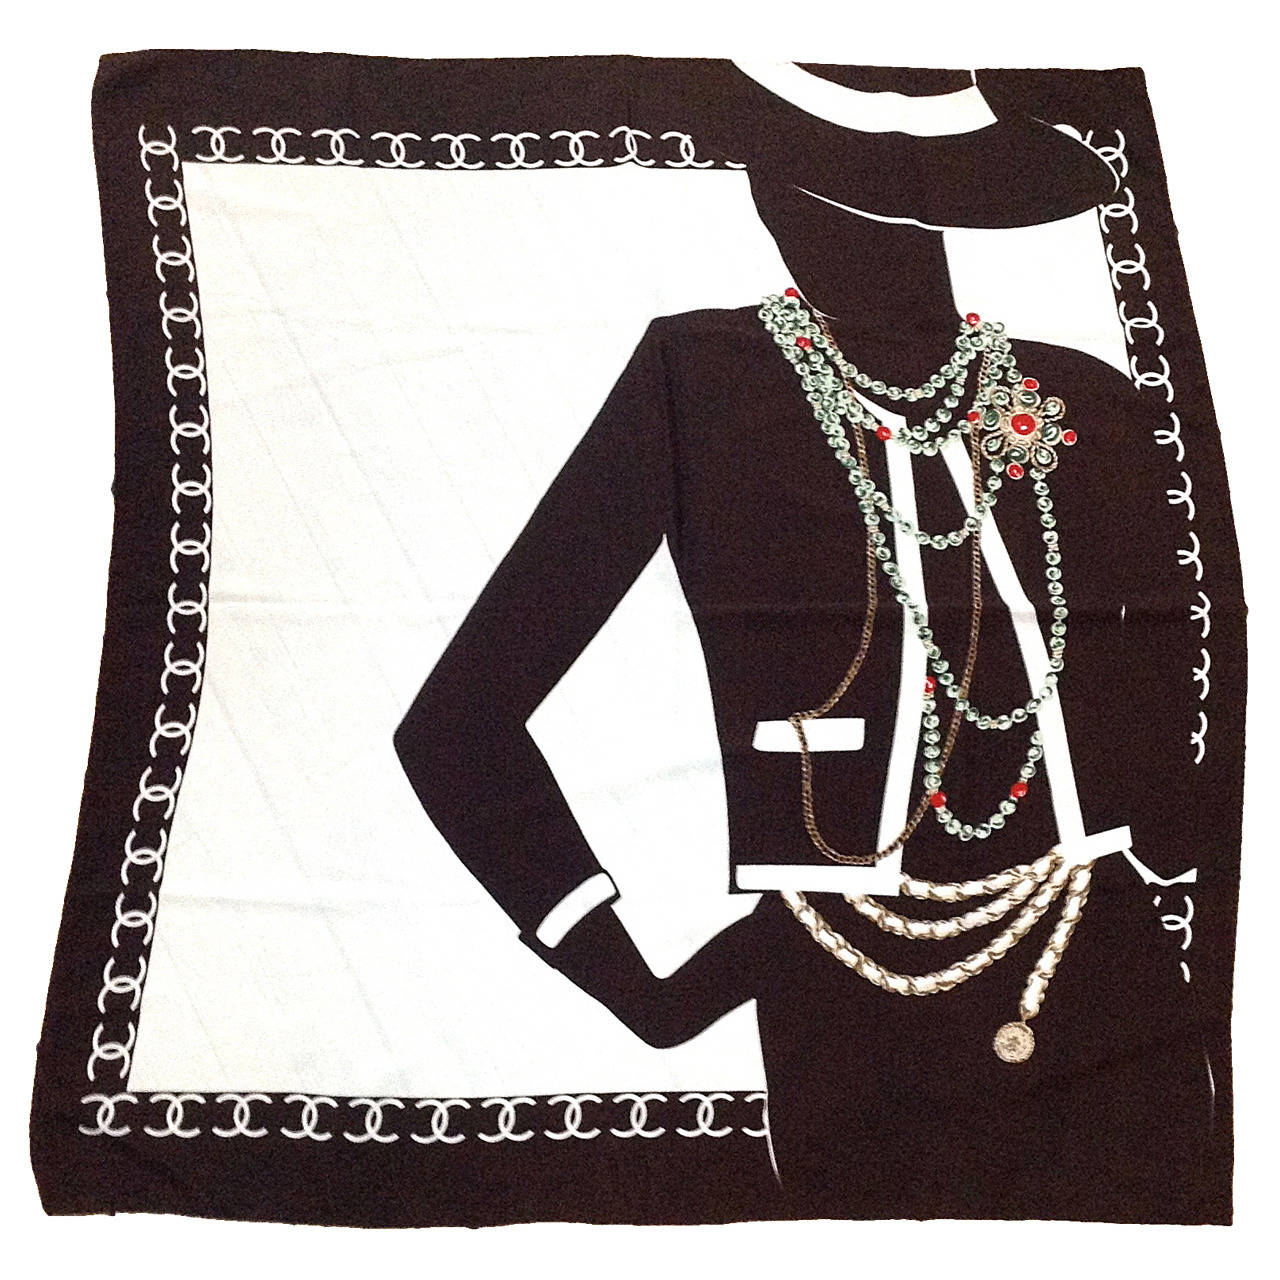 1990s Chanel Silk Scarf Brown And White With Coco Chanel Silhouette At 1stdibs